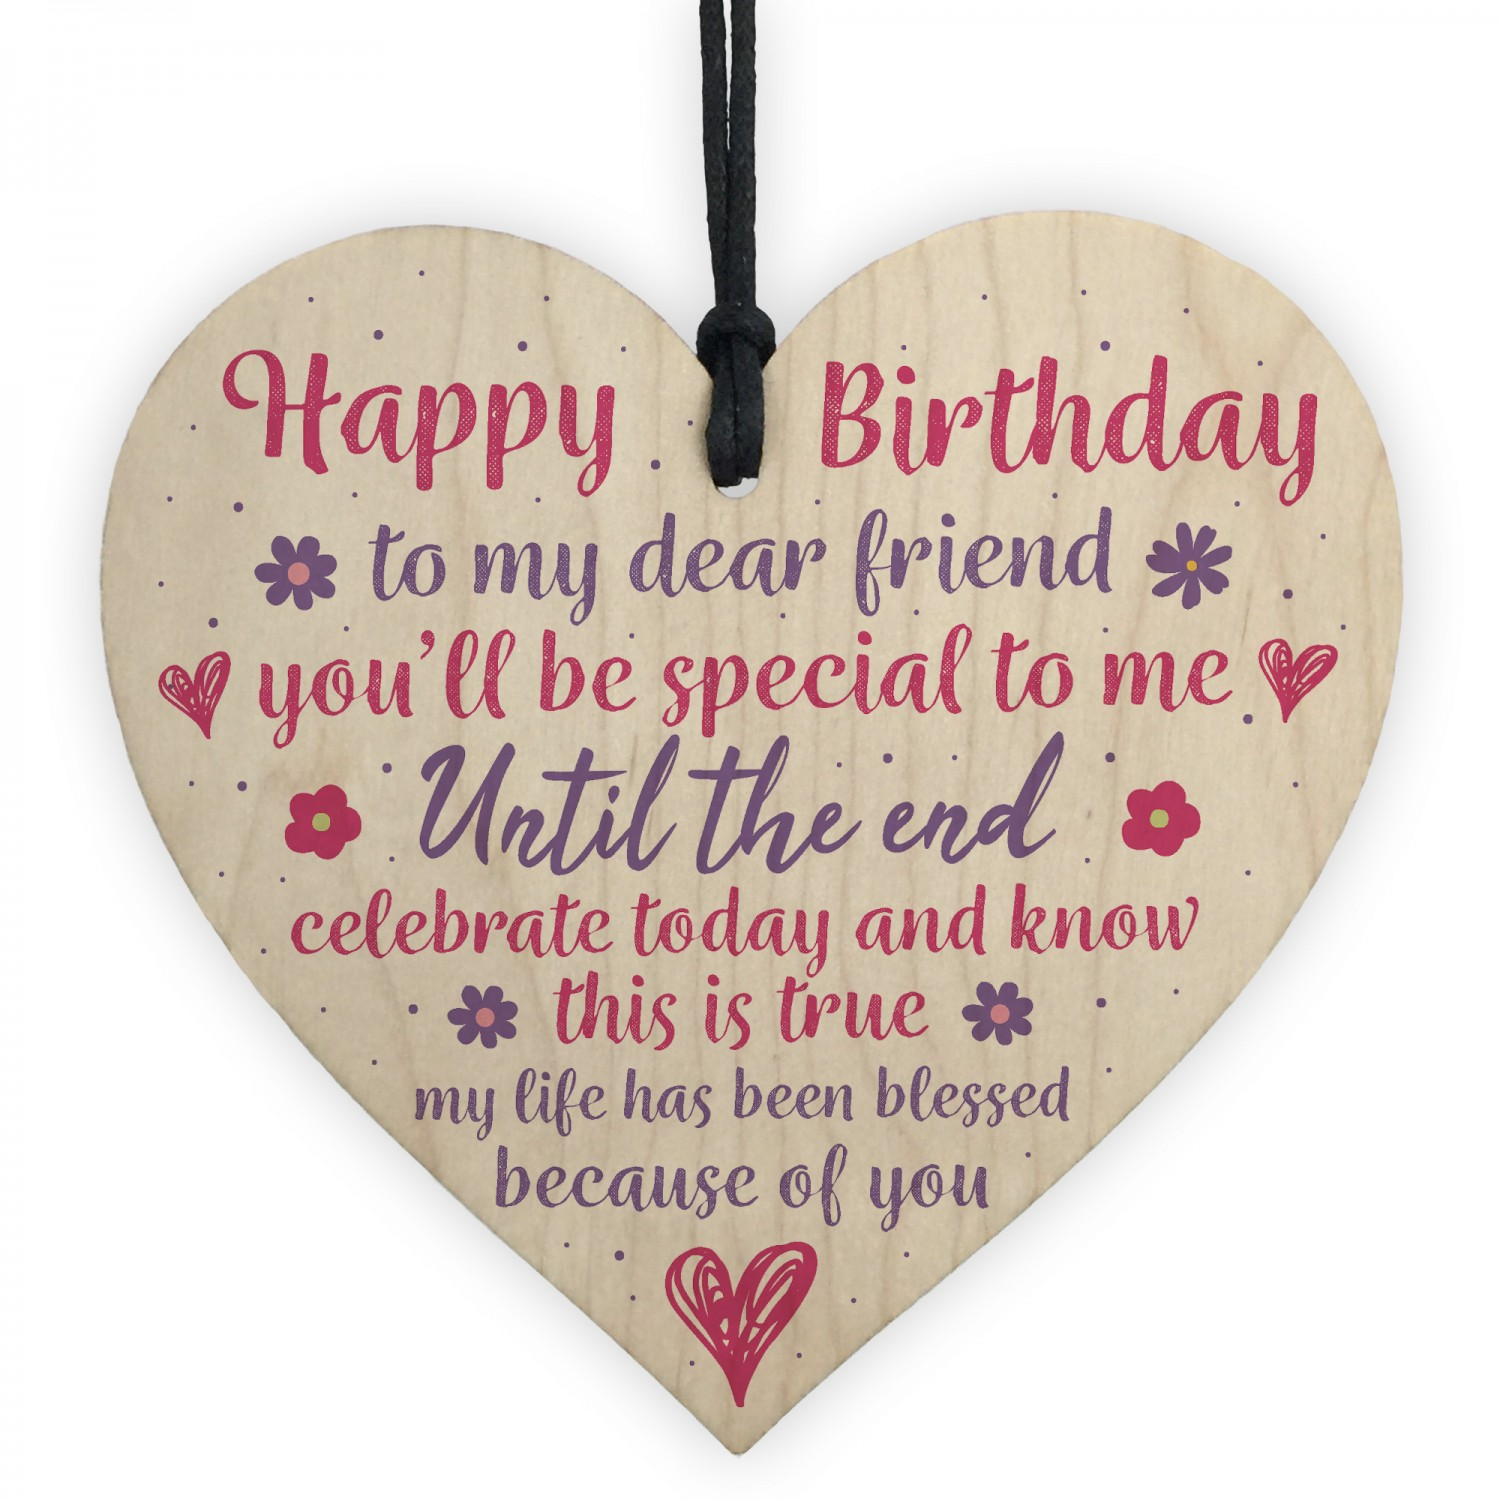 Happy Birthday Friendship Wood Heart Sign Thank You Friend Gift